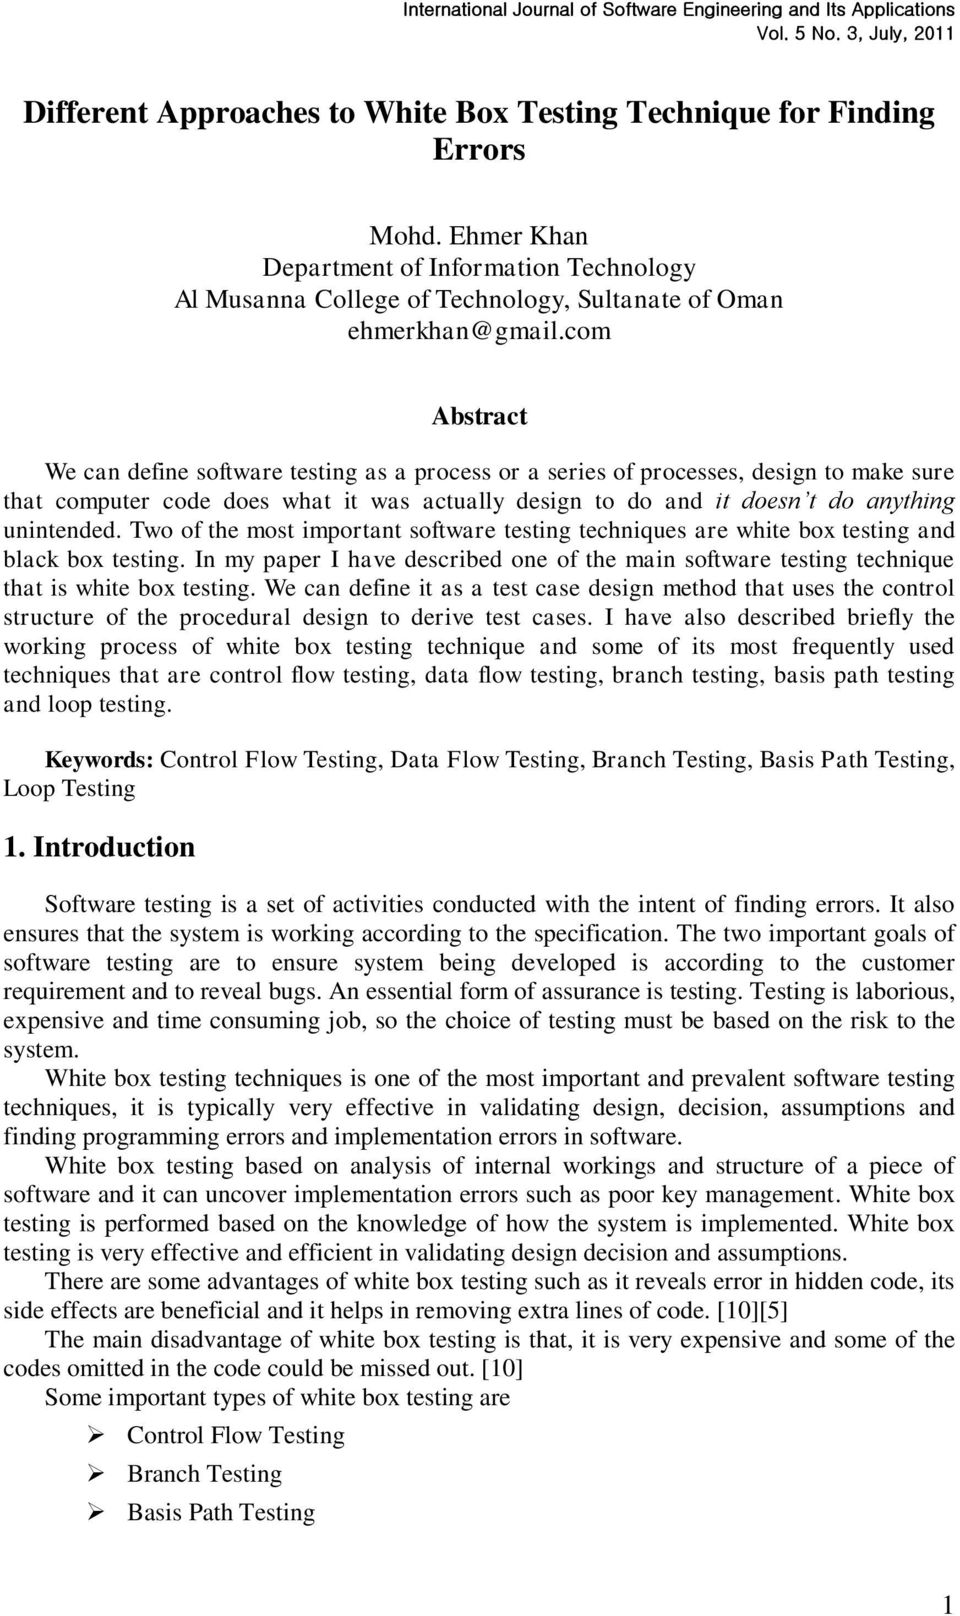 Two of the most important software testing techniques are white box testing and black box testing. In my paper I have described one of the main software testing technique that is white box testing.